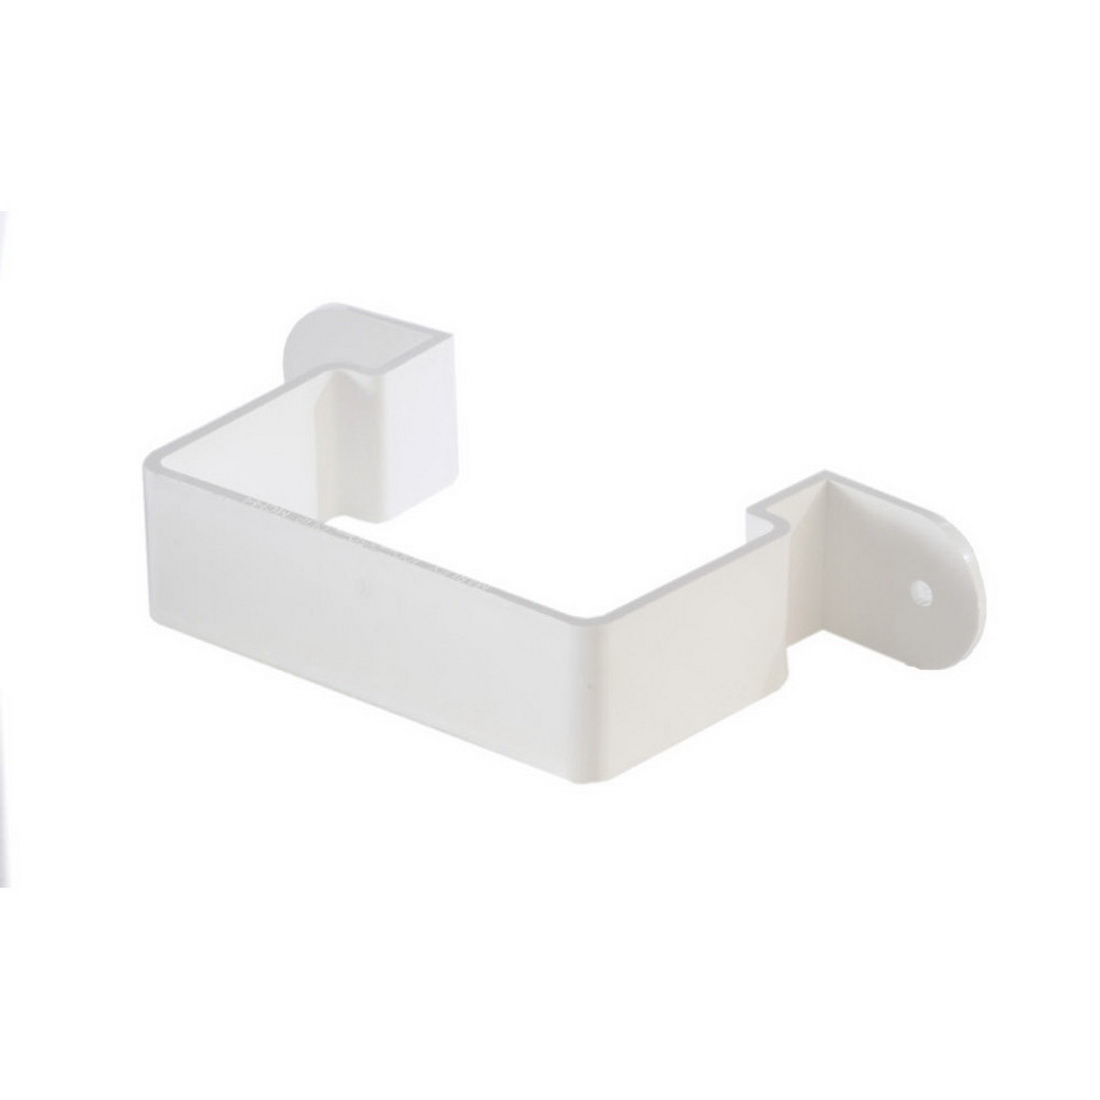 Marley Rectangular Downpipe Stand-Off Clip 100 x 55mm MC144S